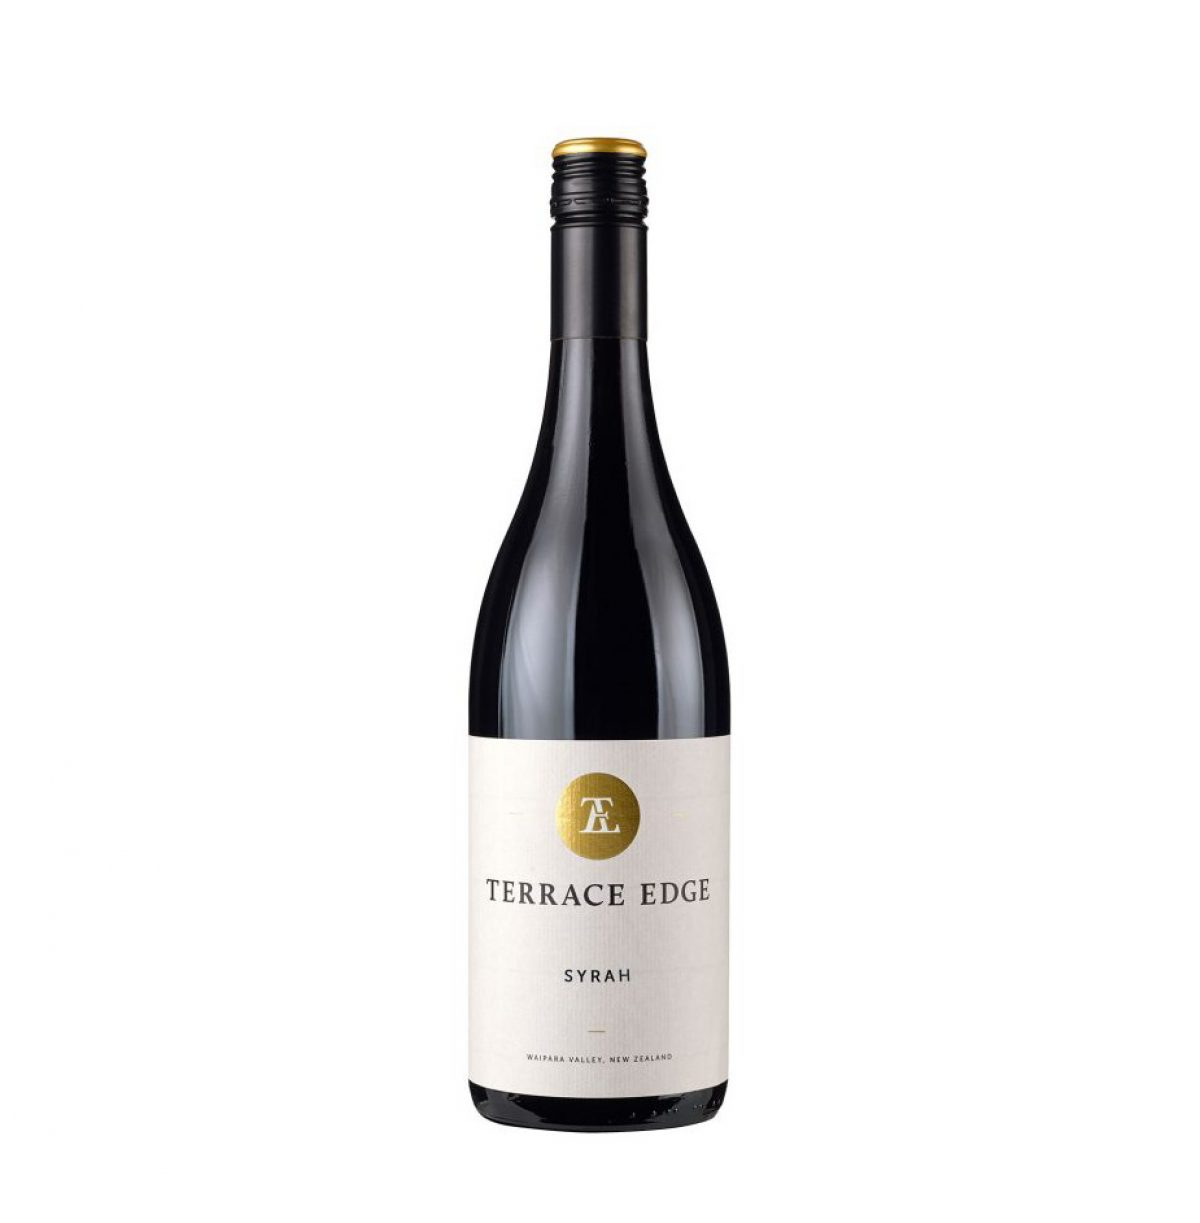 Terrace Edge Syrah 2016 - 6 pack